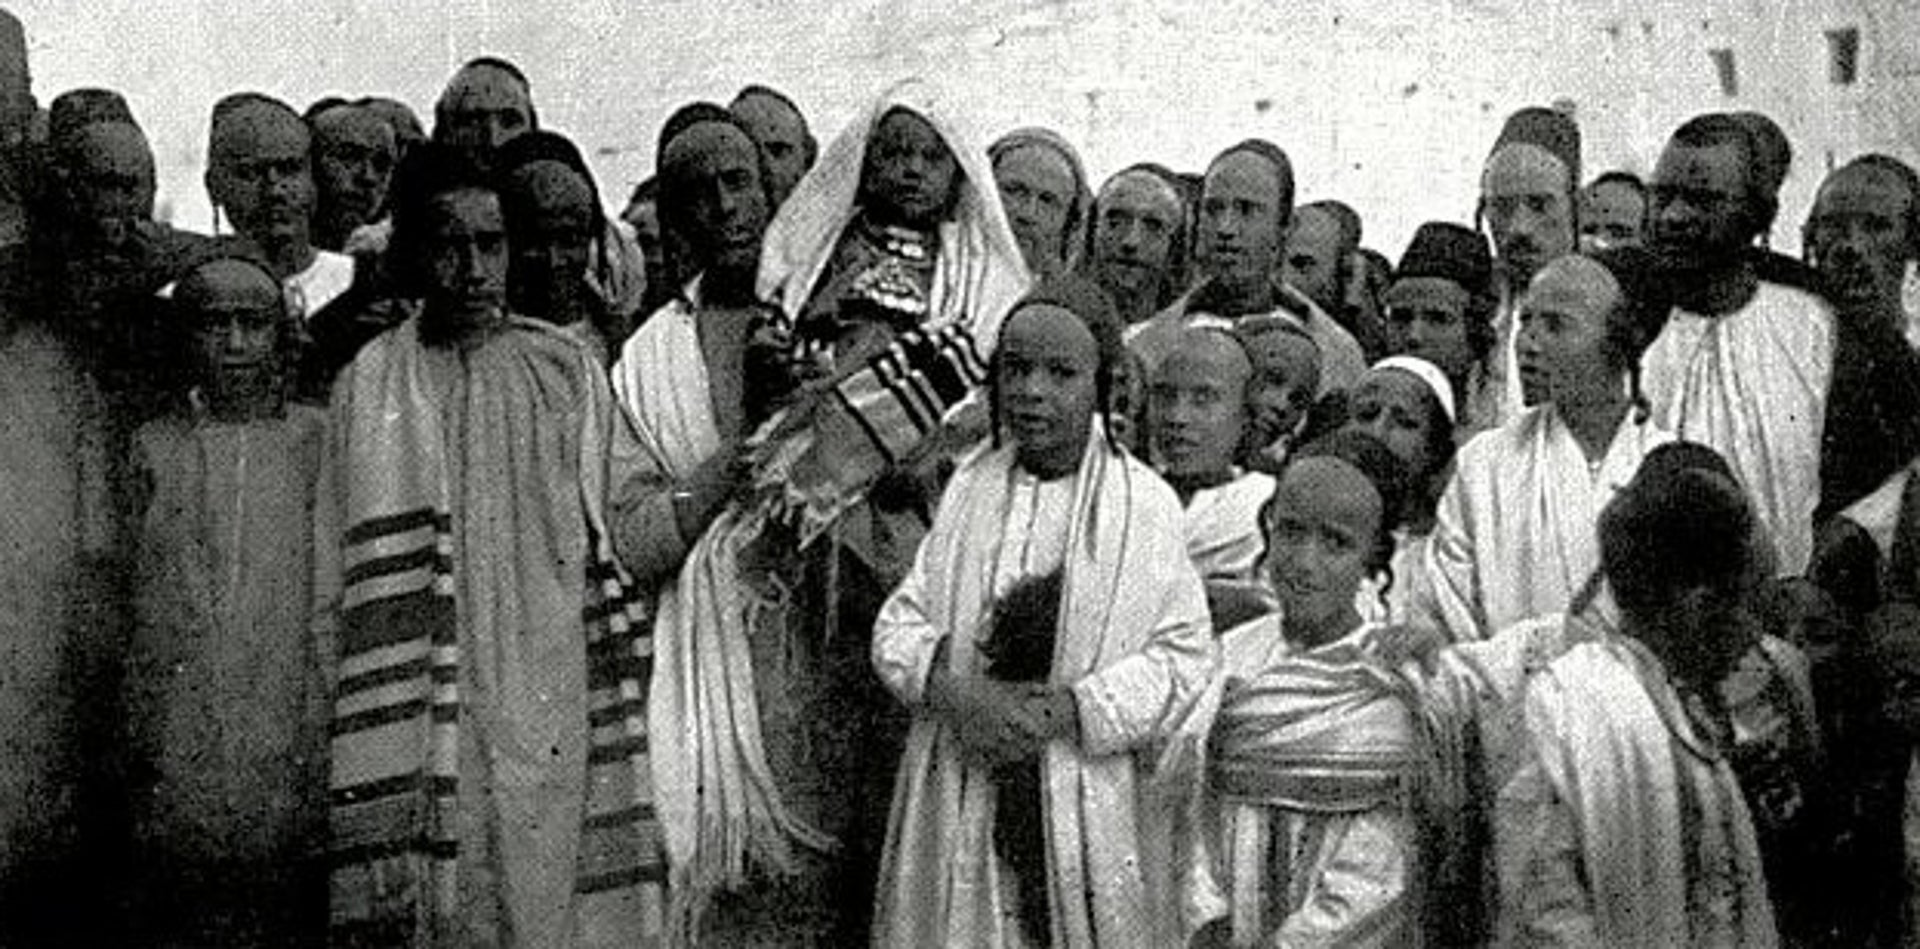 Members of the Jewish community in Sana'a on a holiday day, 1901.